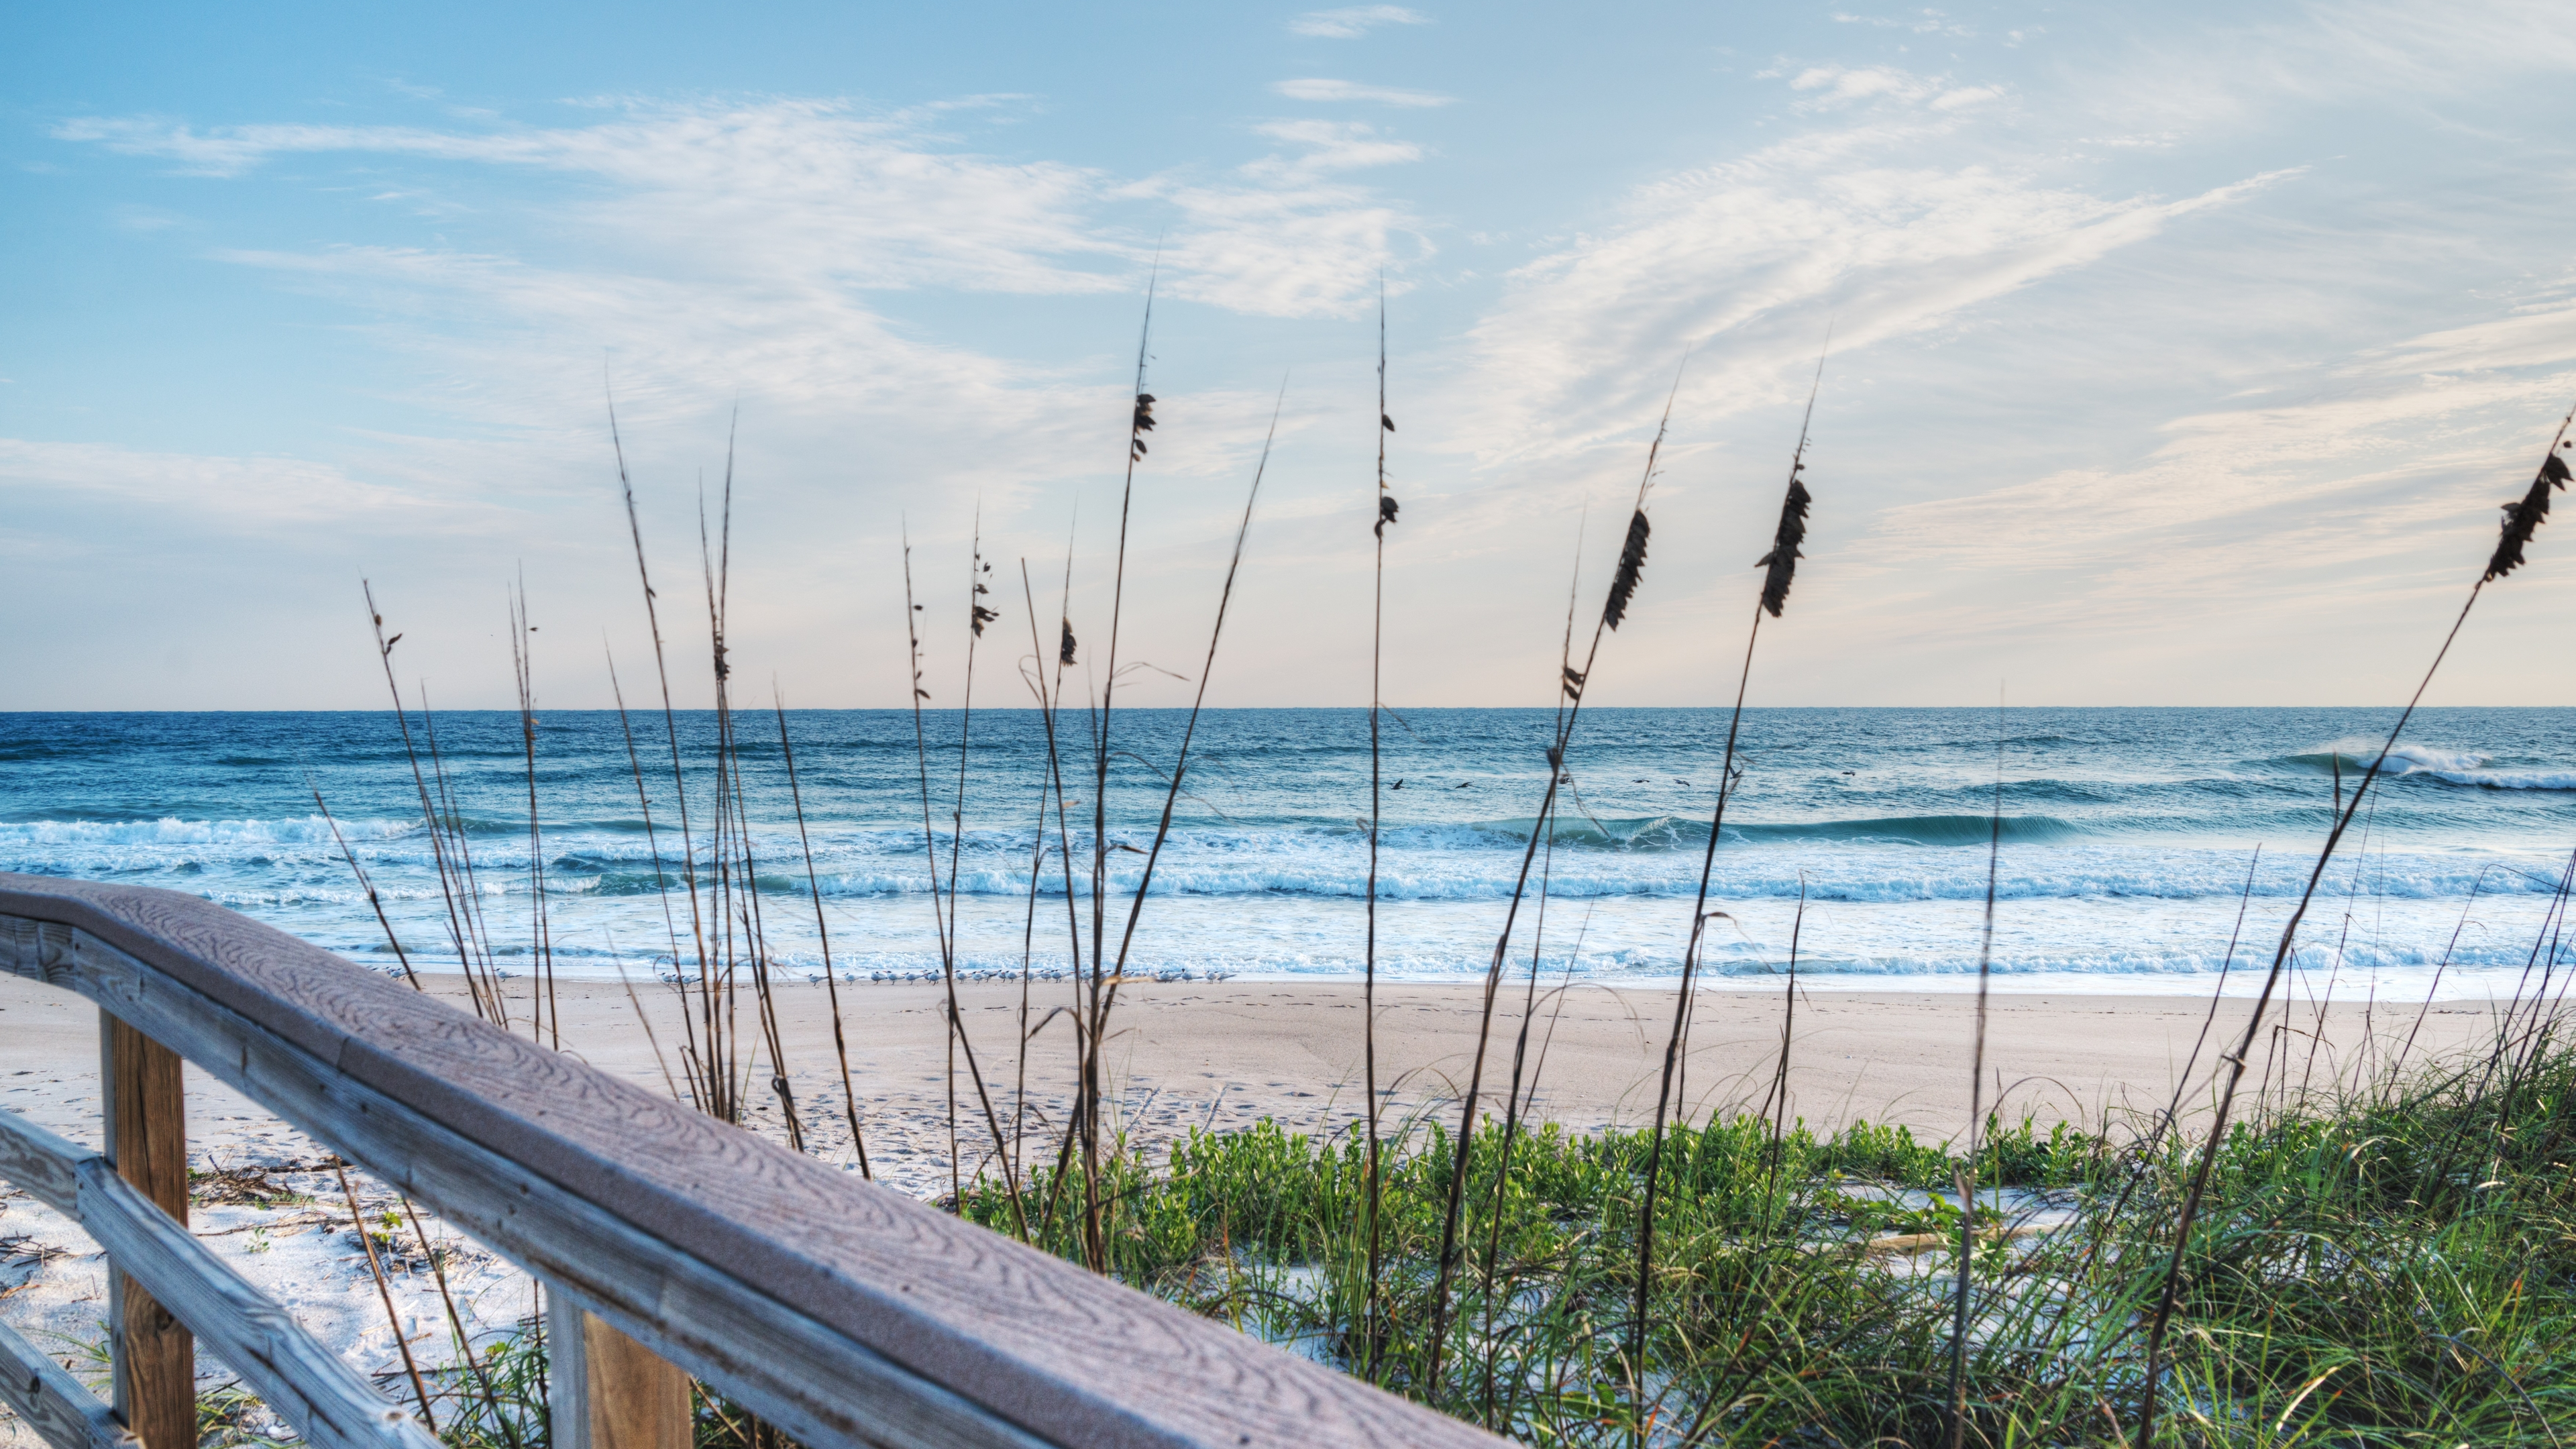 View of the Canaveral National Seashore during sunrise from a nearby boardwalk.